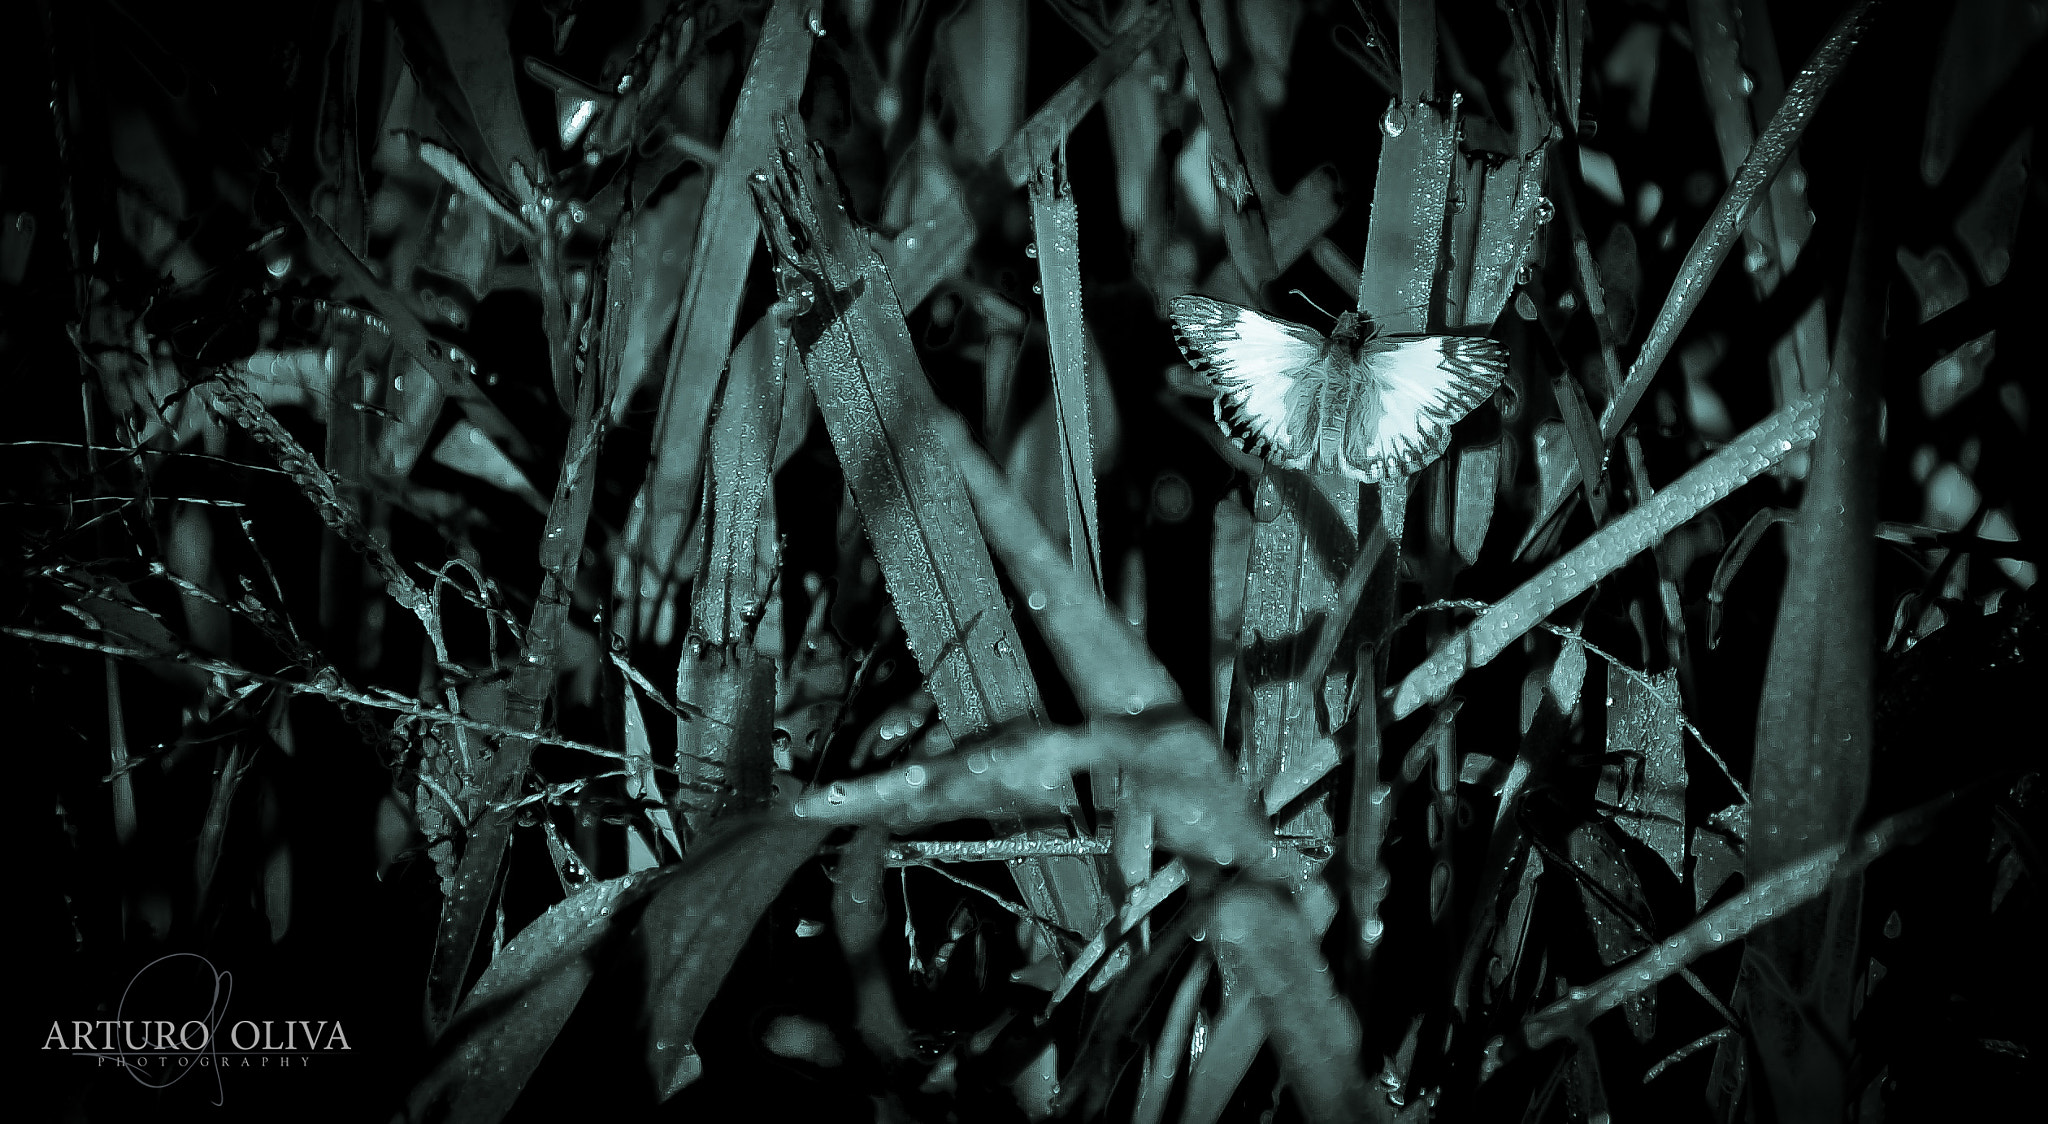 Photograph grass butterfly and light by Arturo Oliva on 500px